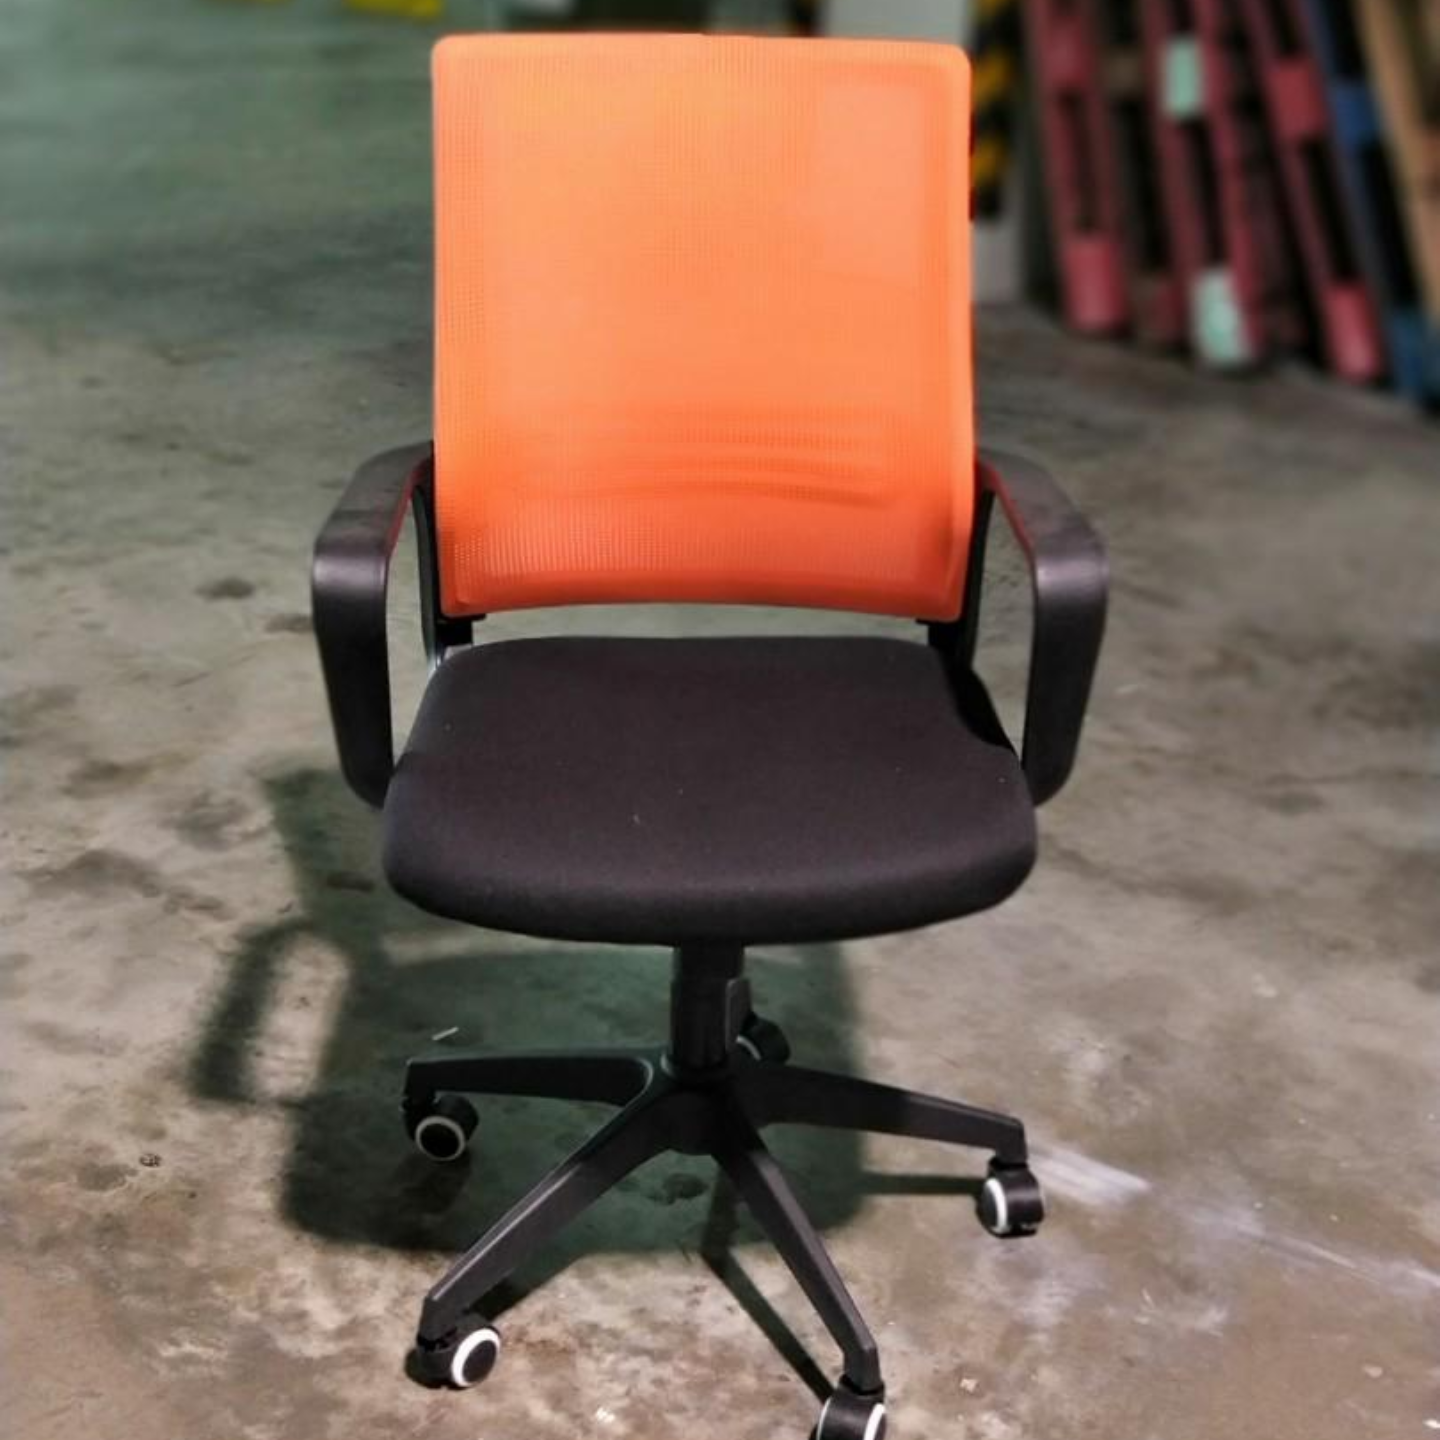 RIKA Office Chair in ORANGE